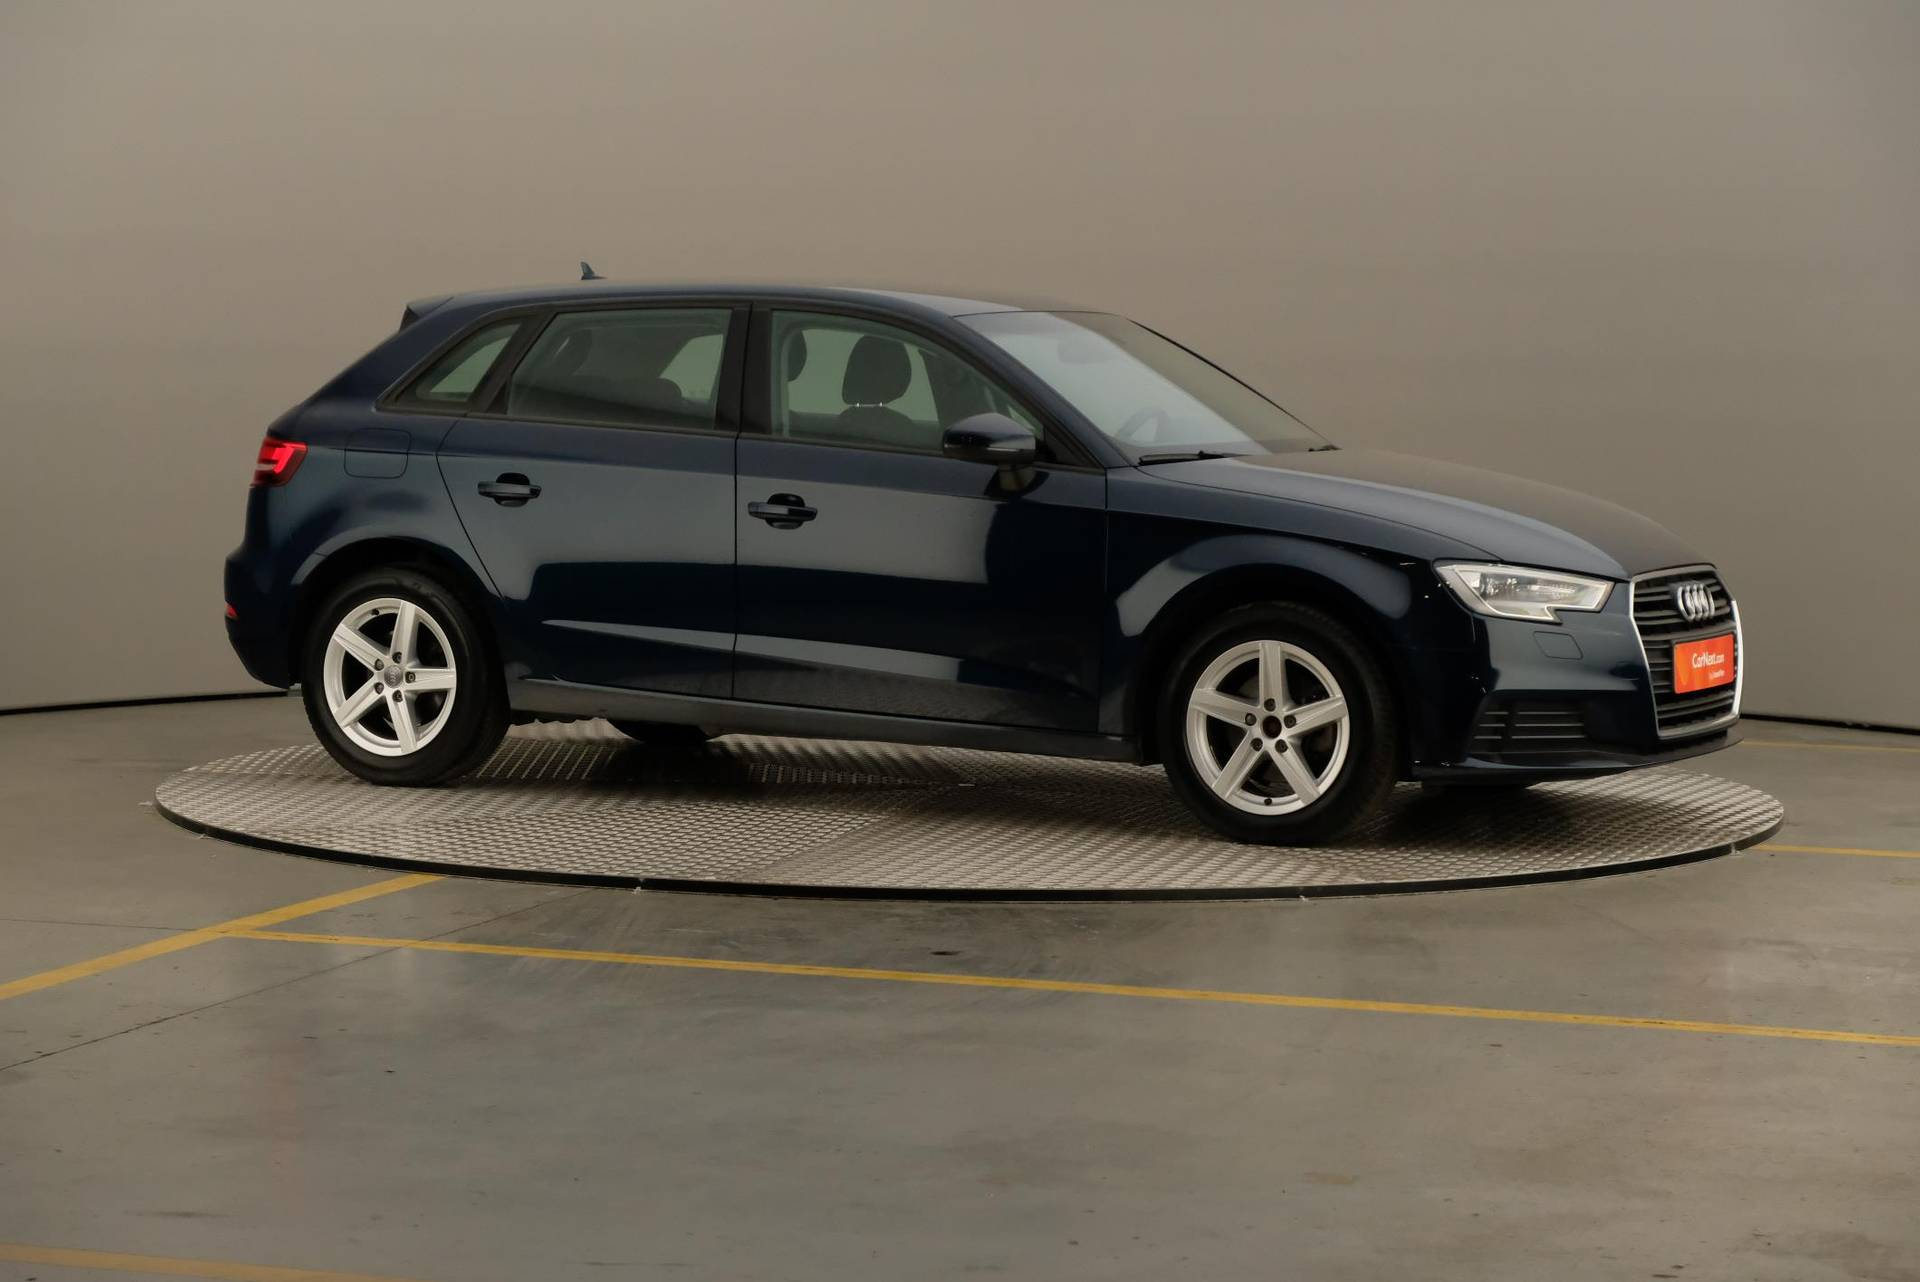 Audi A3 1.6 TDi Pack Intuition Plus Euro6, 360-image25